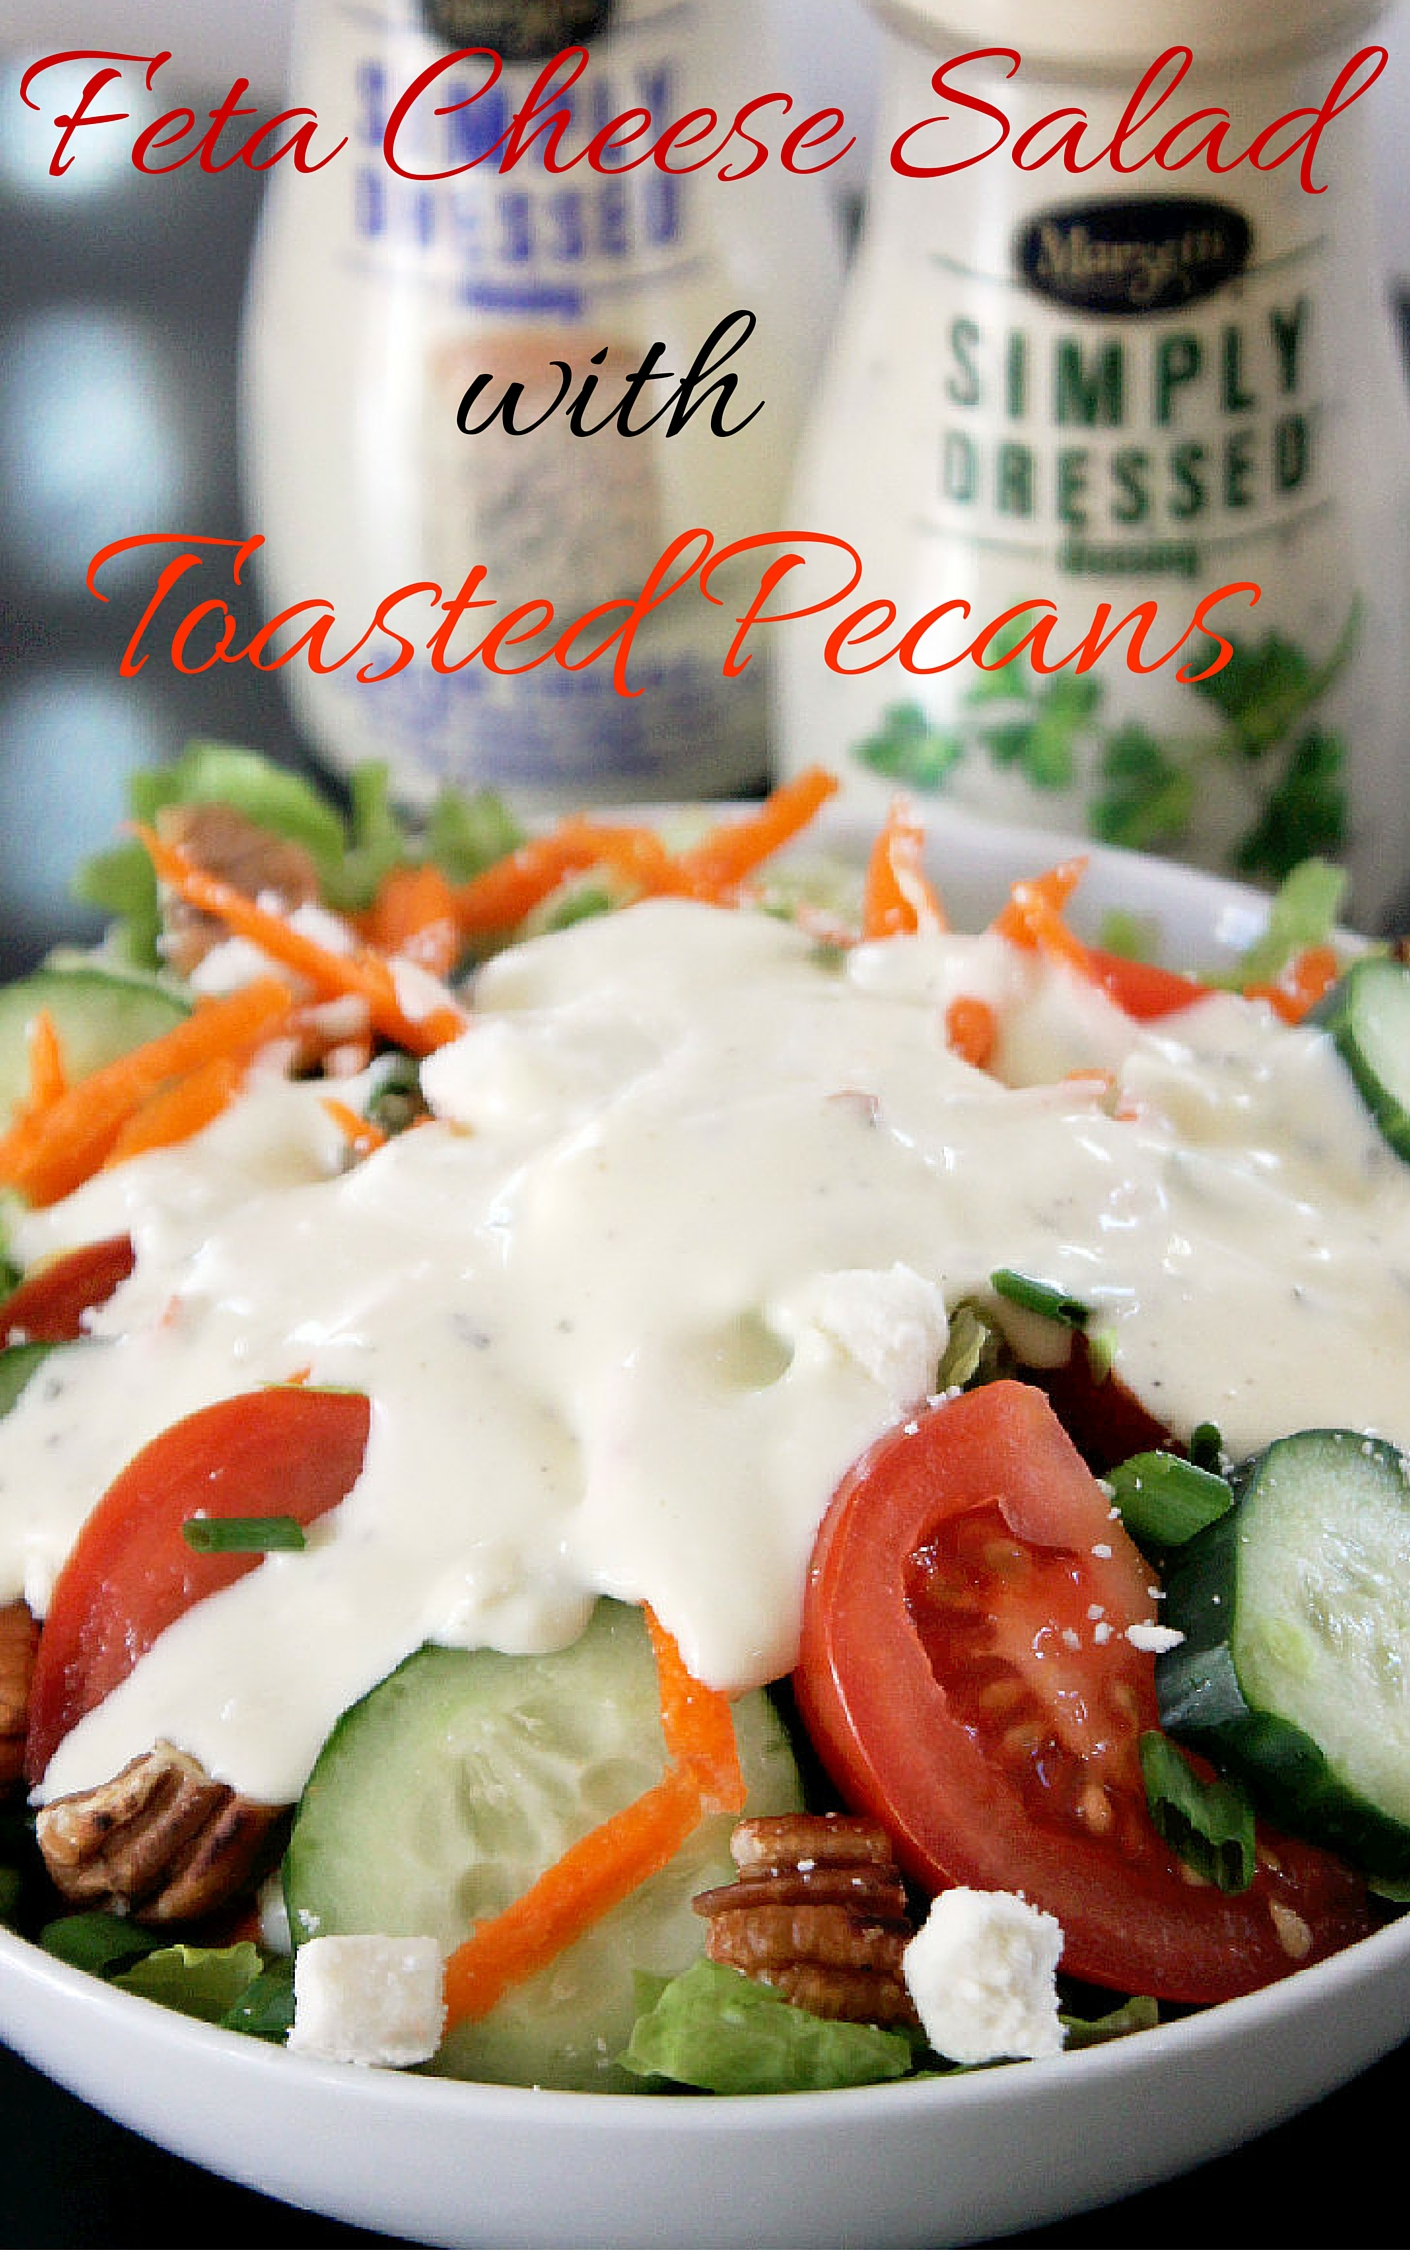 Feta Cheese Salad with Pecans and Marzetti Simply Dressed®-Creole Contessa